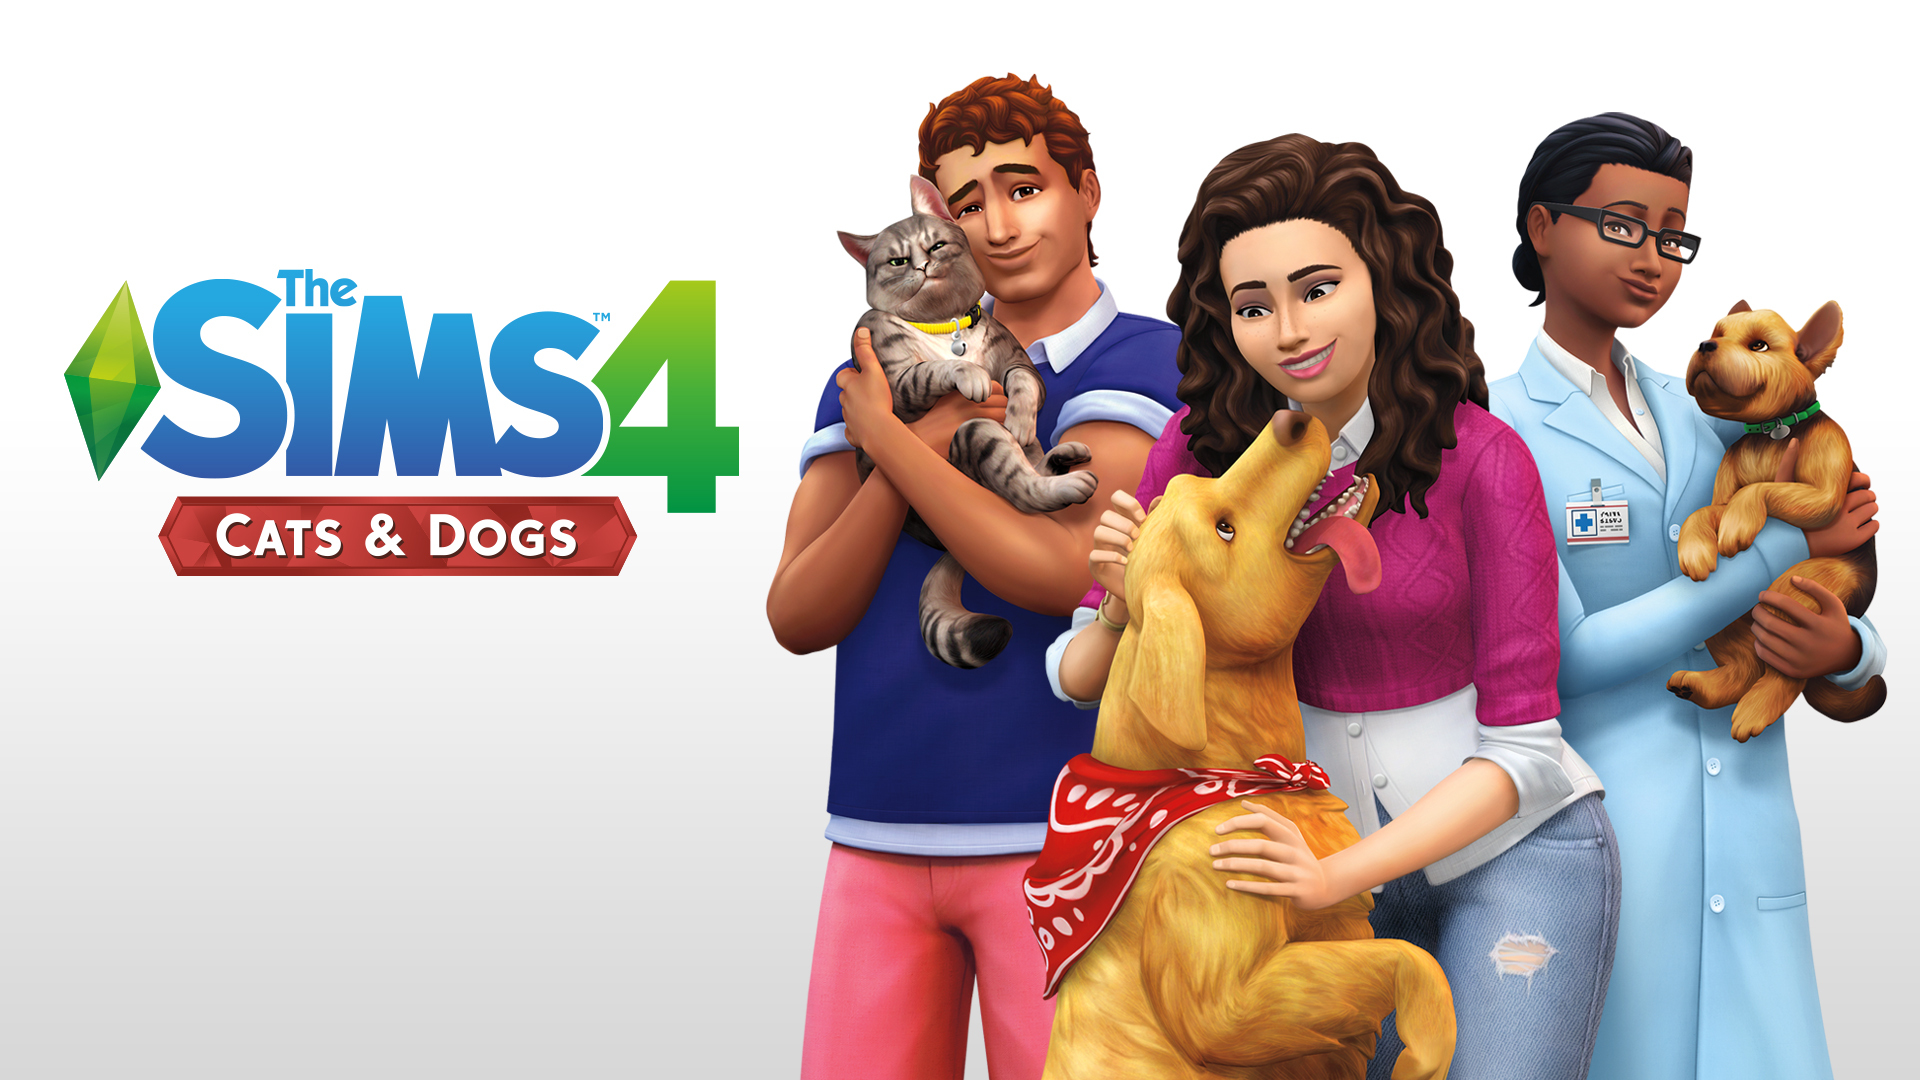 The Sims 4 is getting customizable dogs and cats, at long last